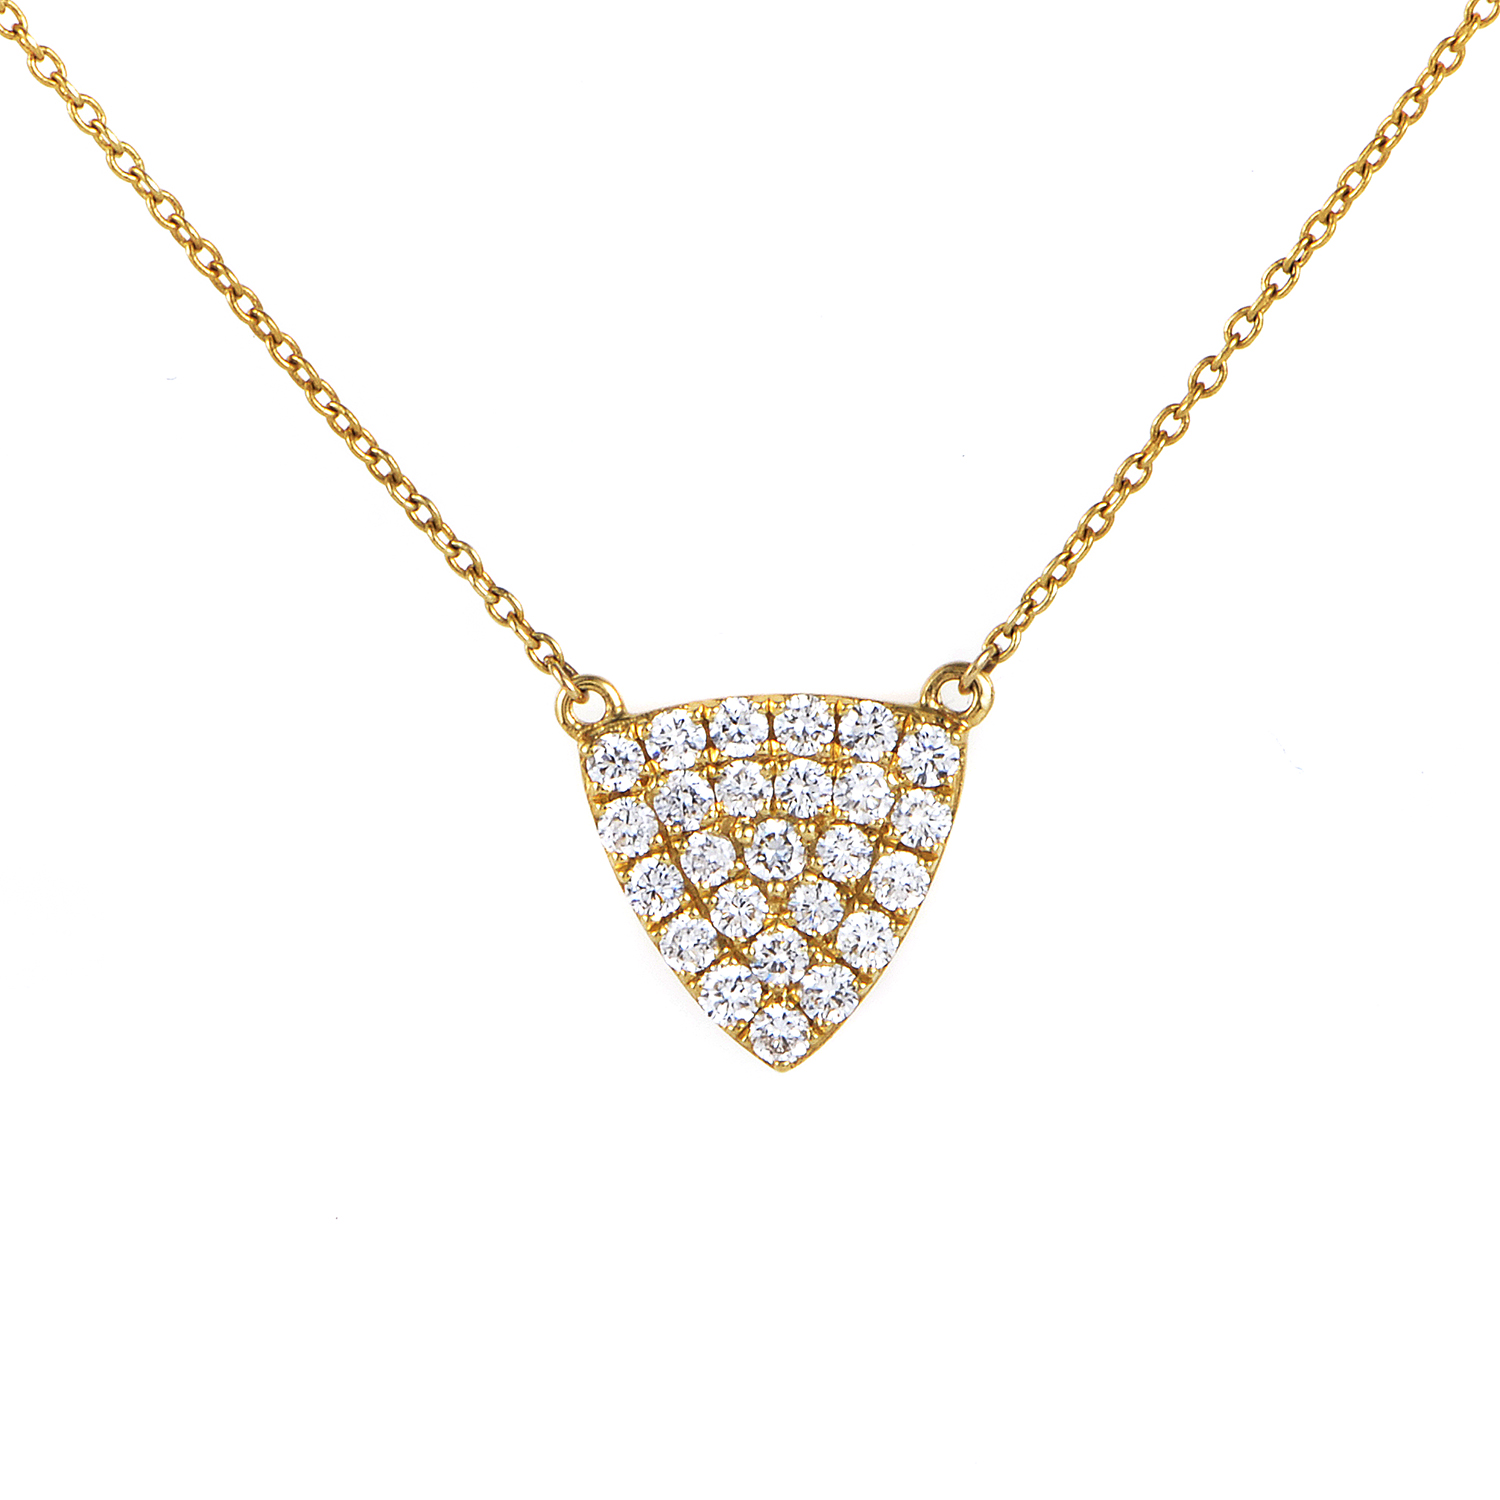 Women's 18K Yellow Gold Diamond Pave Triangle Pendant Necklace